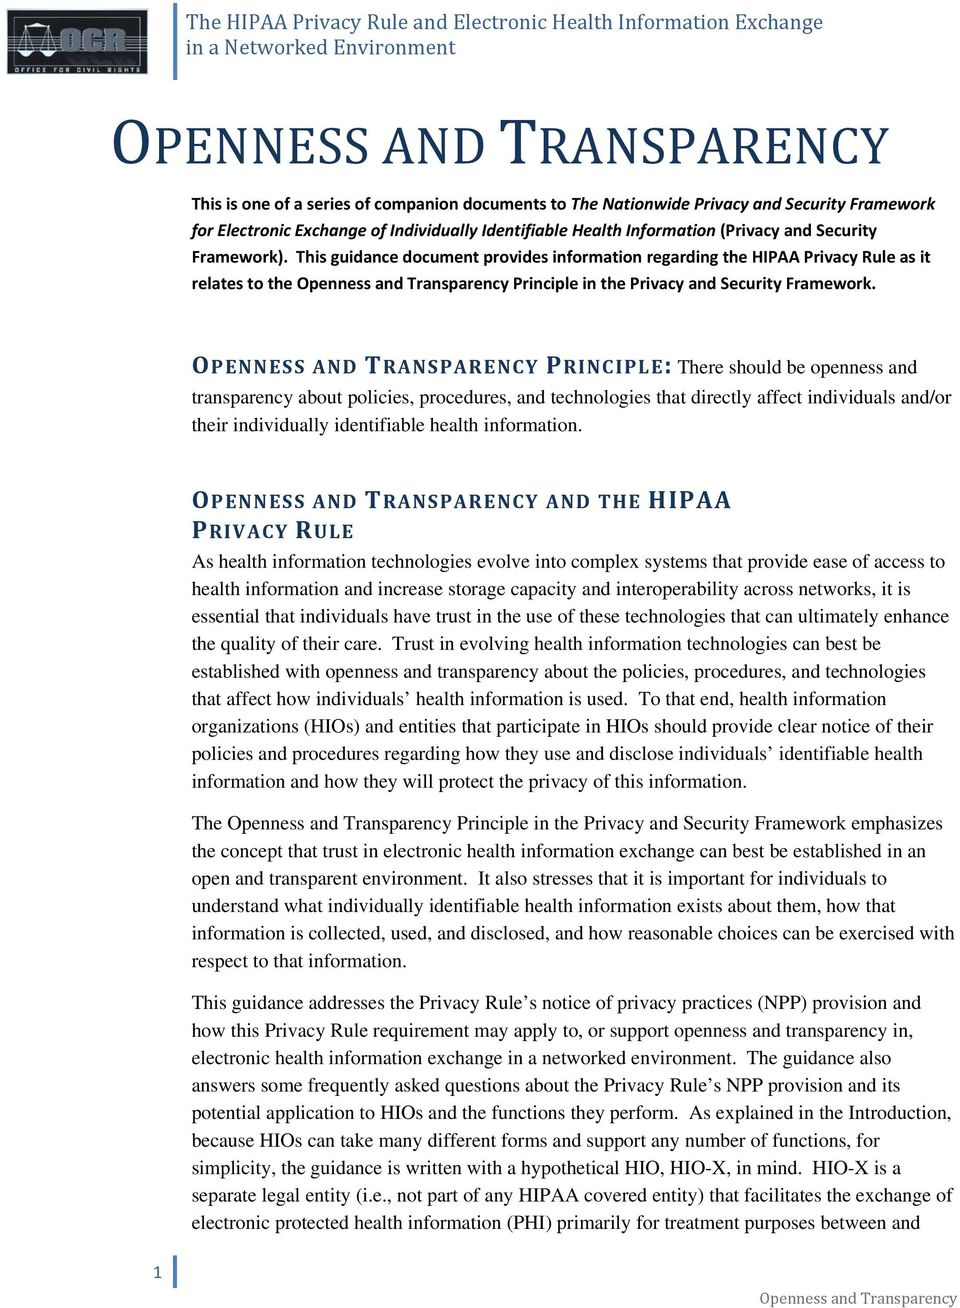 This guidance document provides information regarding the HIPAA Privacy Rule as it relates to the Openness and Transparency Principle in the Privacy and Security Framework.